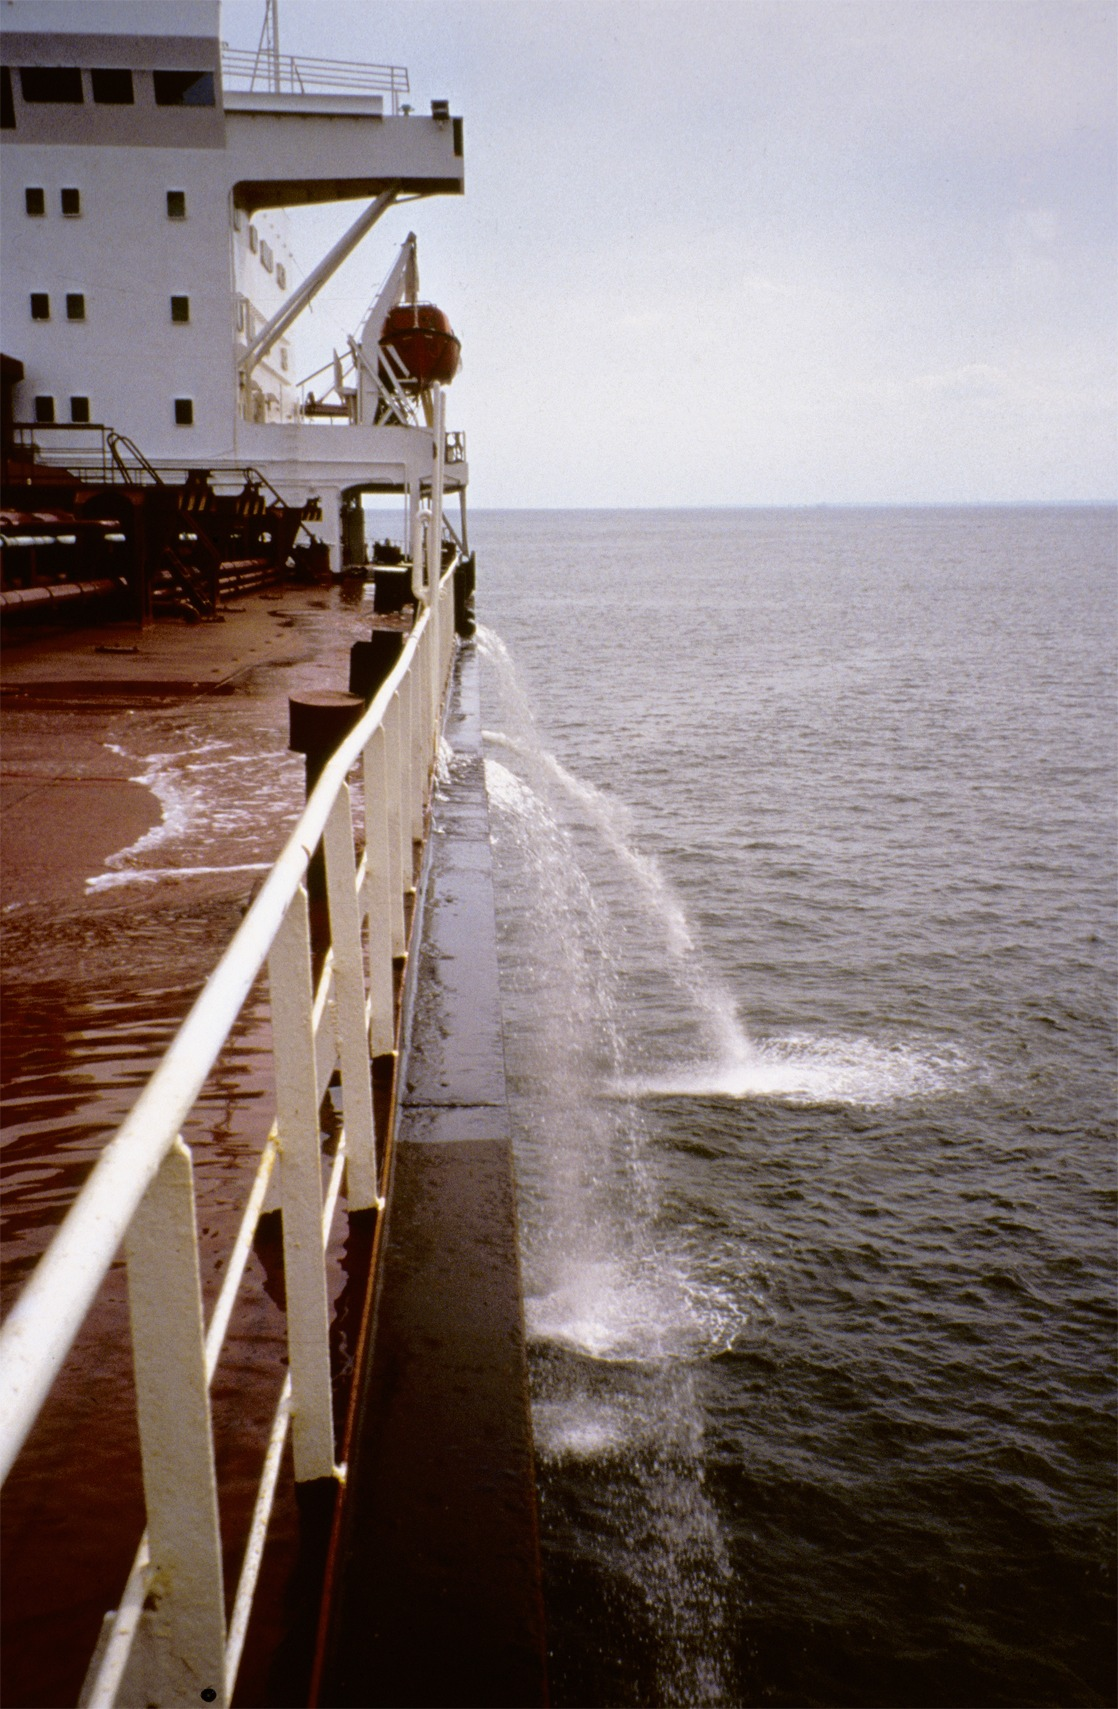 A large ship flushes water from its ballast tanks while at sea<div class='credit'><strong>Credit:</strong> A large ship flushes water from its ballast tanks while at sea</div>